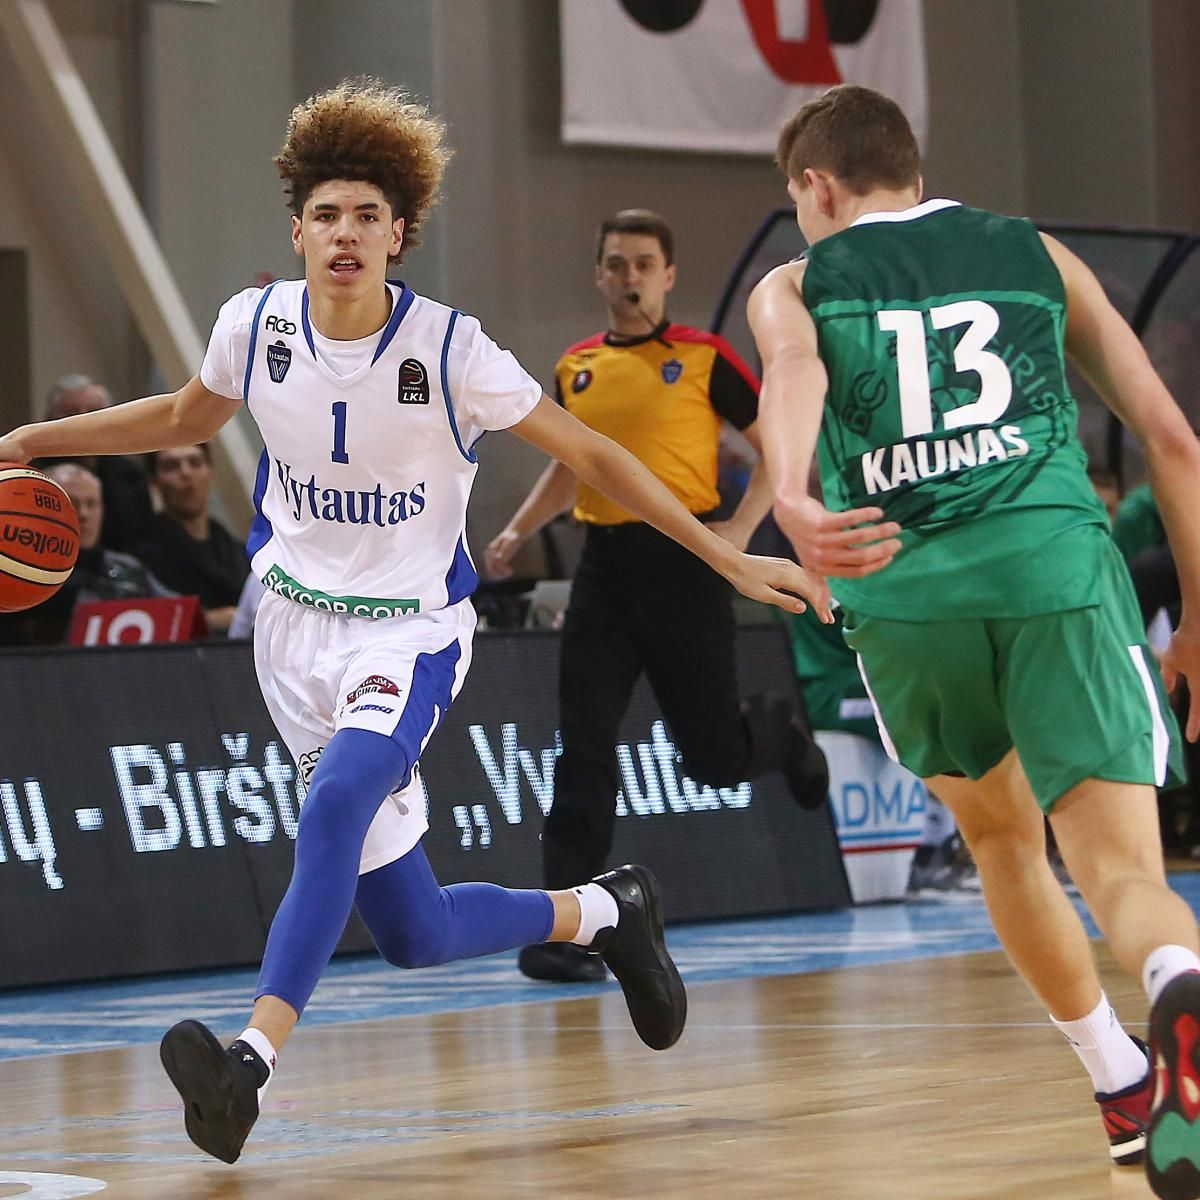 La Lumiere School In La Porte Indiana Has Canceled Its Scheduled Game Against Spire Institute Citing Lamelo Ball S Professi Lamelo Ball Liangelo Ball Ball